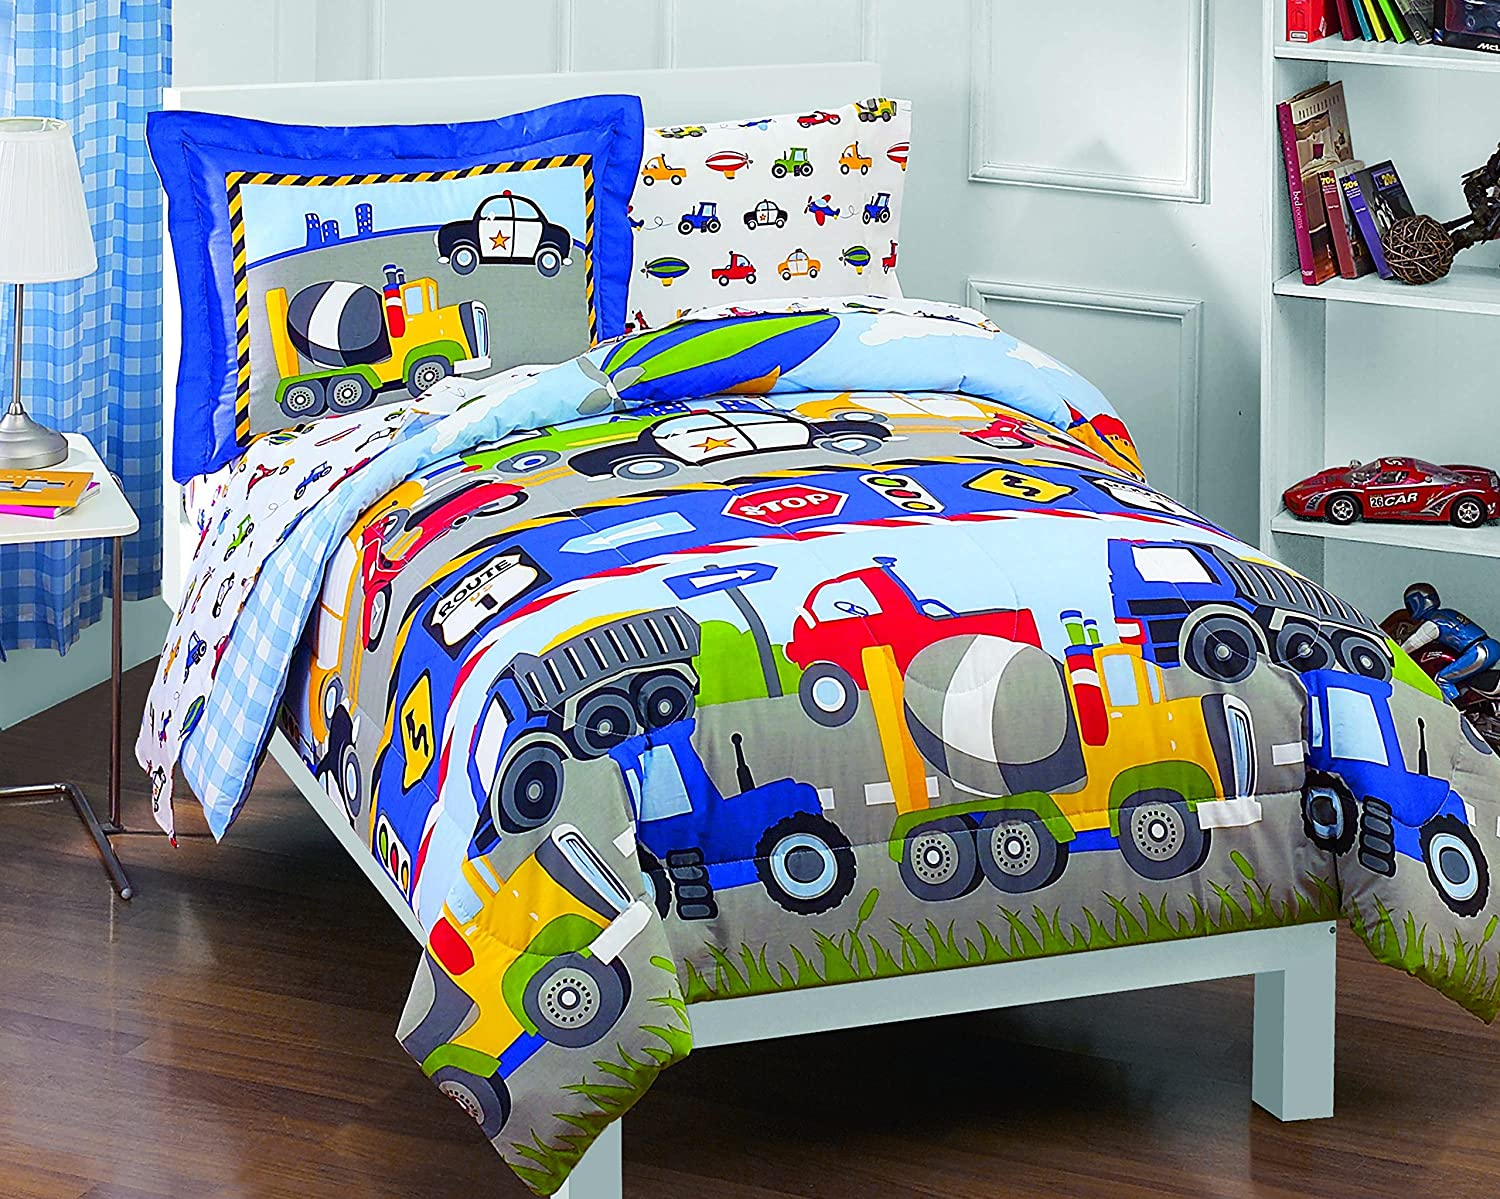 Dream Factory Trucks Tractors Cars Boys 5-Piece Comforter Sheet Set